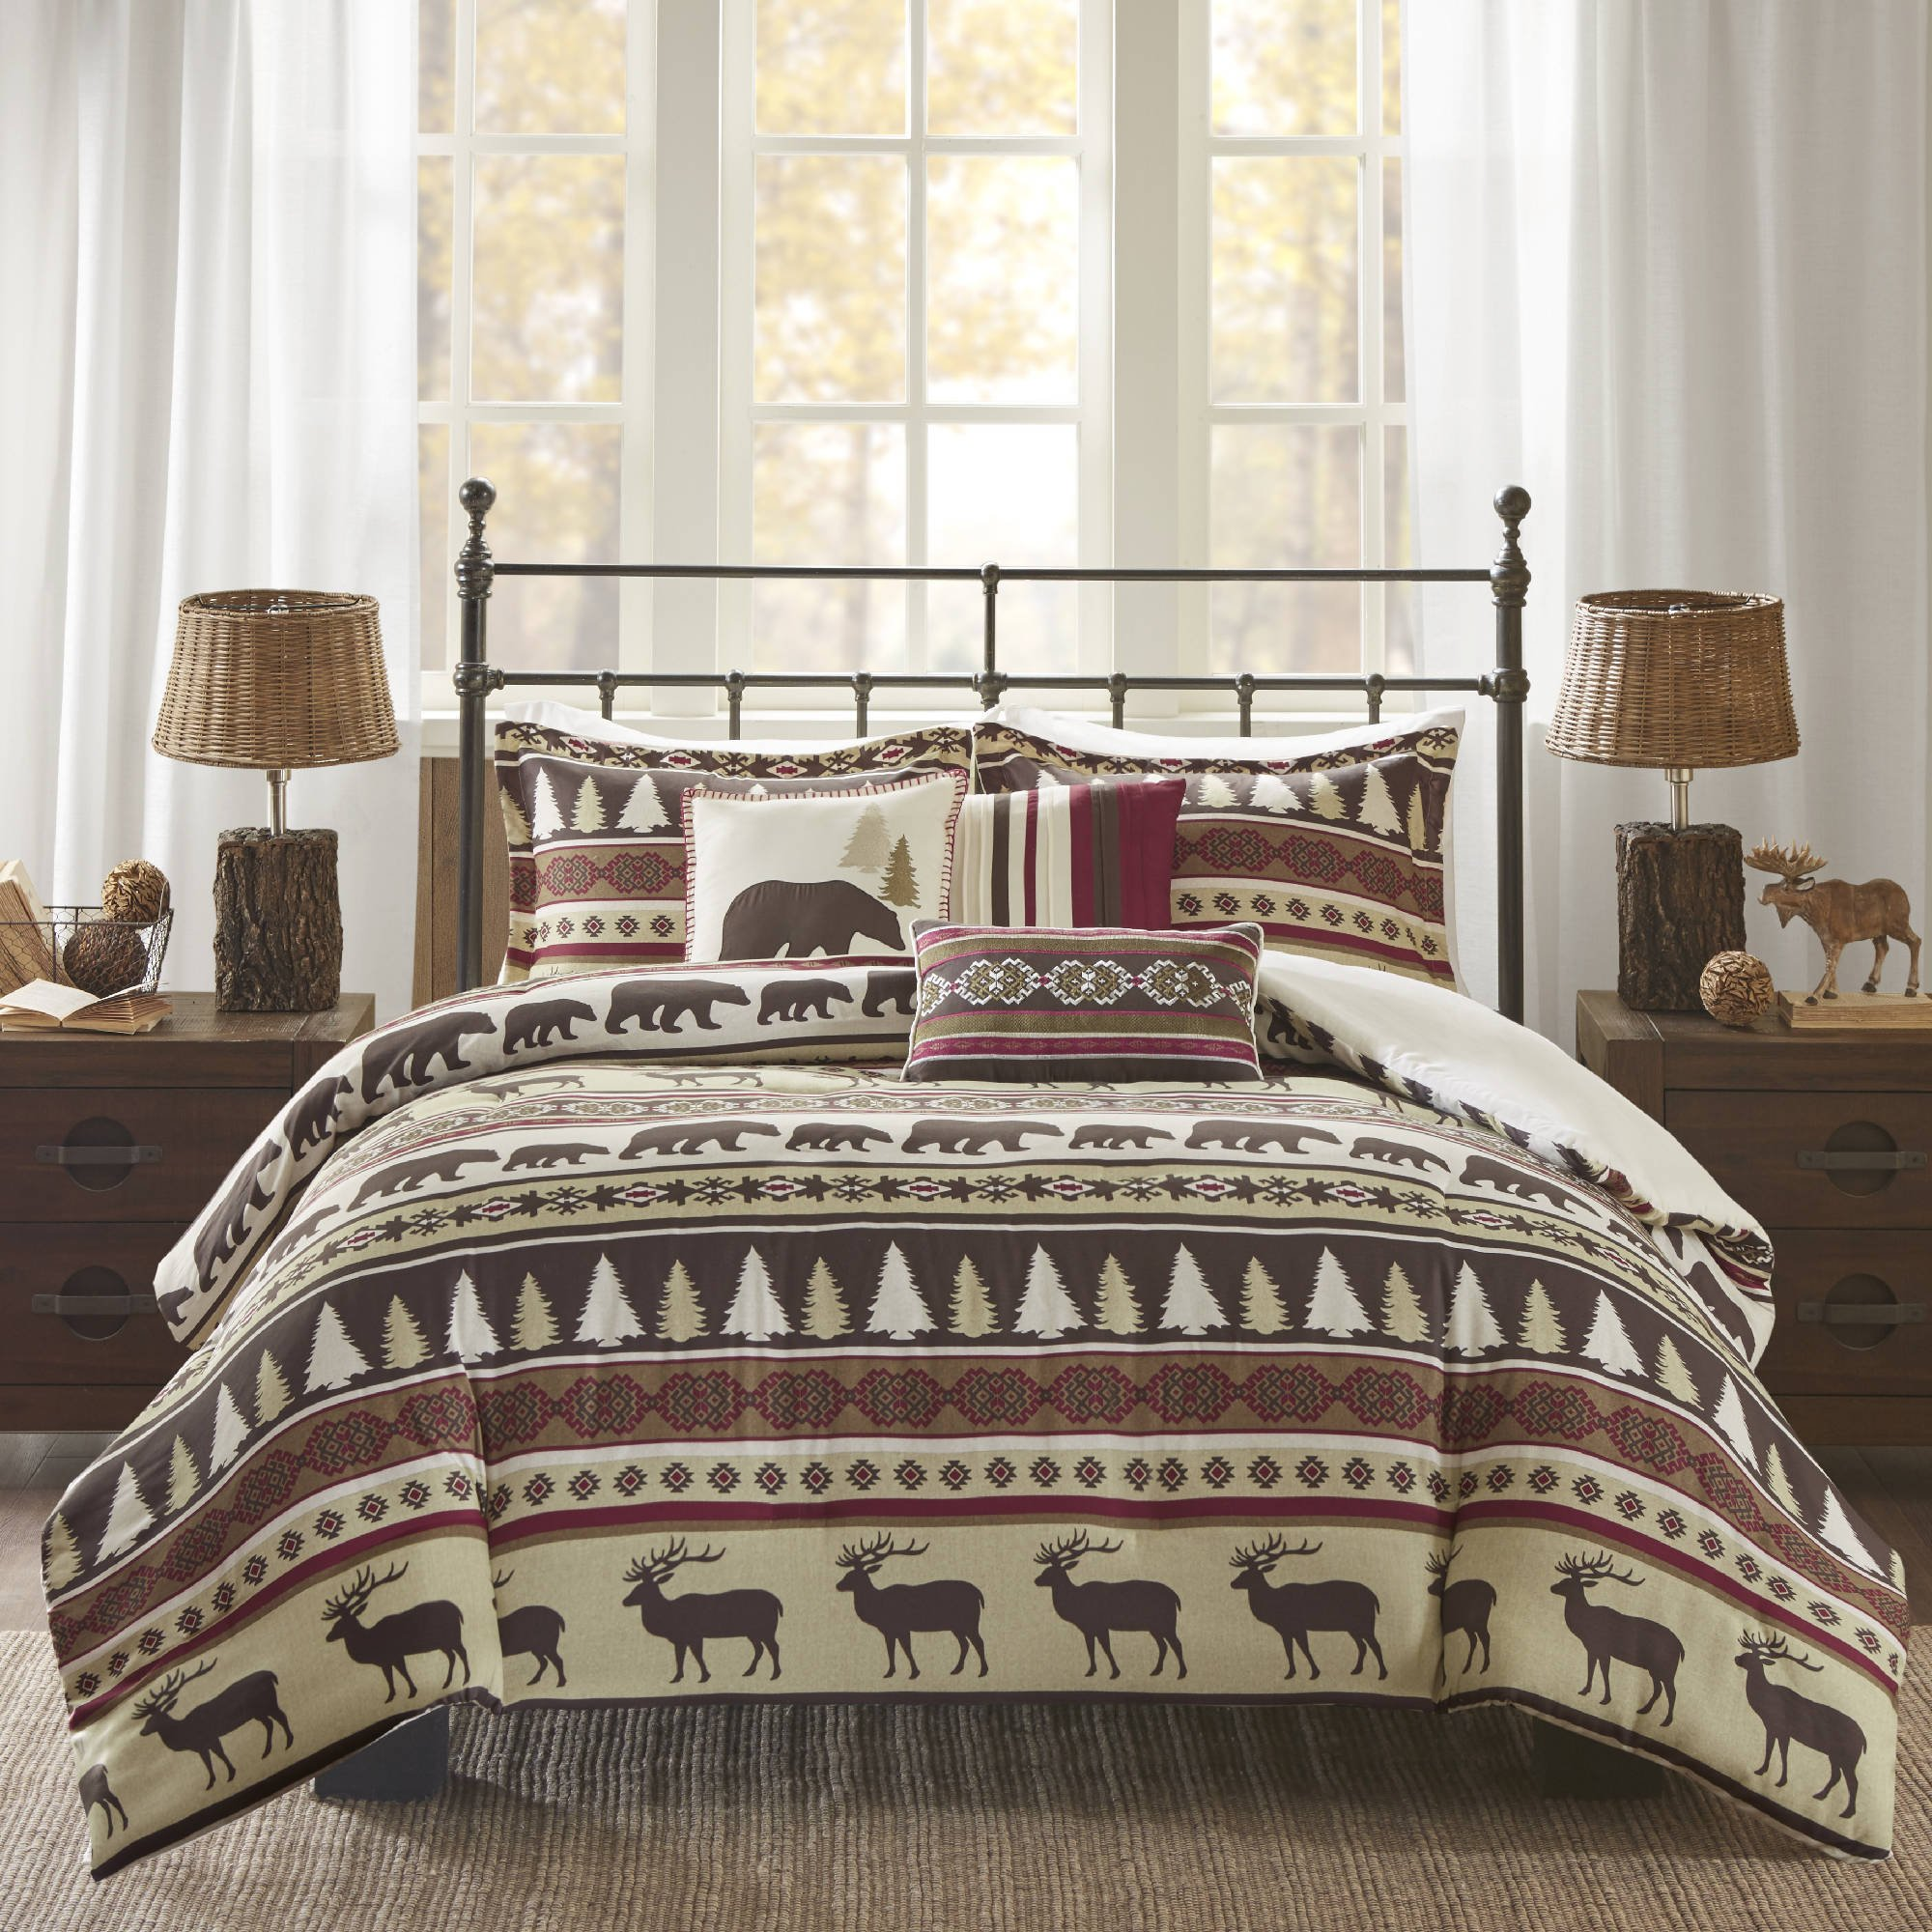 6 Piece Red White Stripe King/Cal King Duvet Cover Set, Lodge Animal Print Themed Bedding, Cabin Country Tartan Pattern Cottage Woods Bears Deer Pine Trees Horizontal Diamond Patterns,Polyester